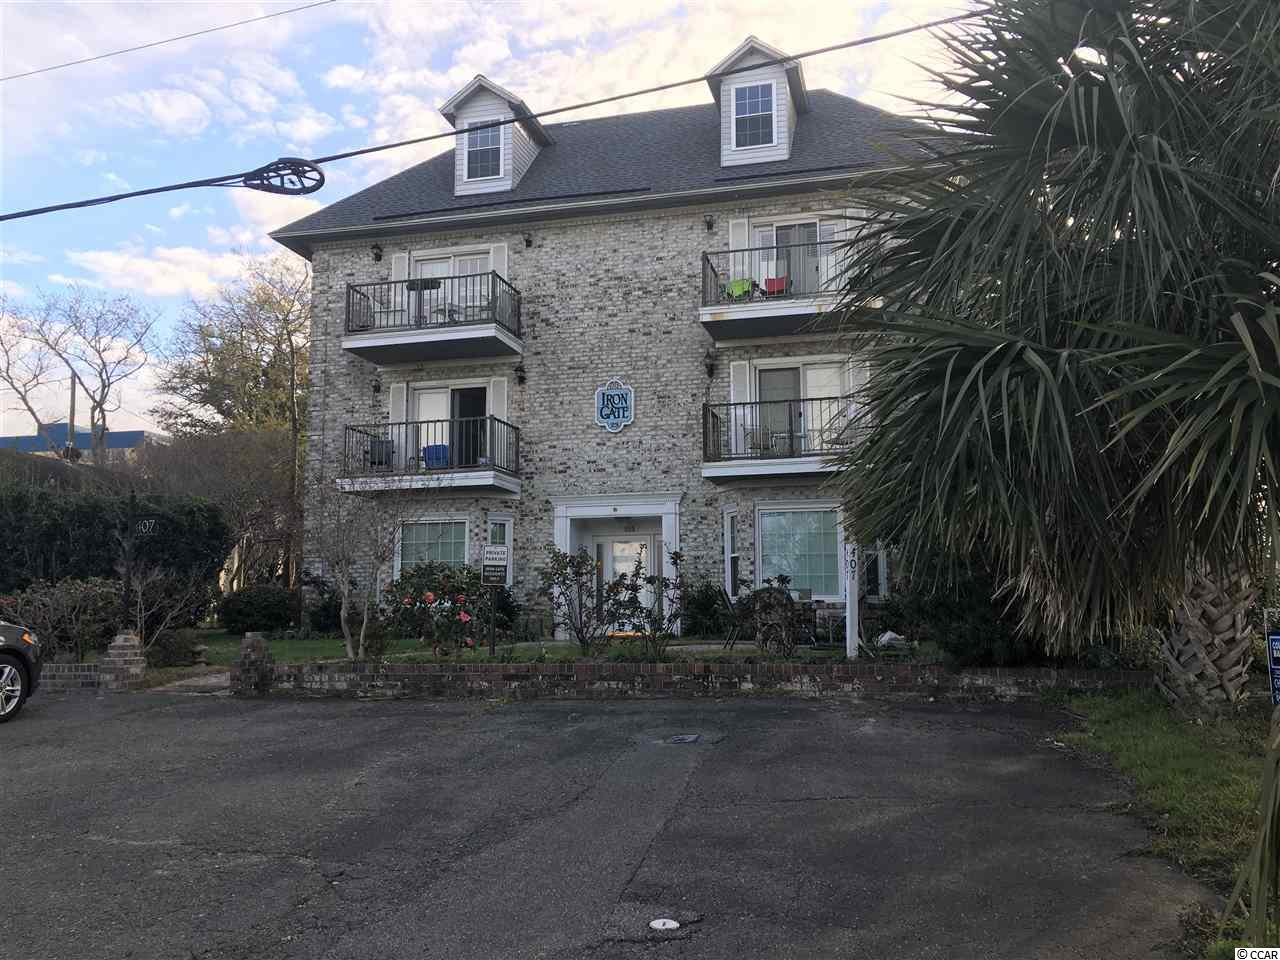 Located in the Iron Gate complex. Iron Gate is 1 block from the sandy shores of the Atlantic ocean off of 23rd Ave N. in Myrtle Beach. 2 bedrooms,  2 bath unit. This is an excellent opportunity. The unit has been updated and offers solid surface countertops, stainless steel appliances, tile flooring, laundry room,....... Check this out today- keep as an annual rental or convert to short term! You have lots of options!  Square footage is approximate and not guaranteed.  Buyer is responsible for verification.